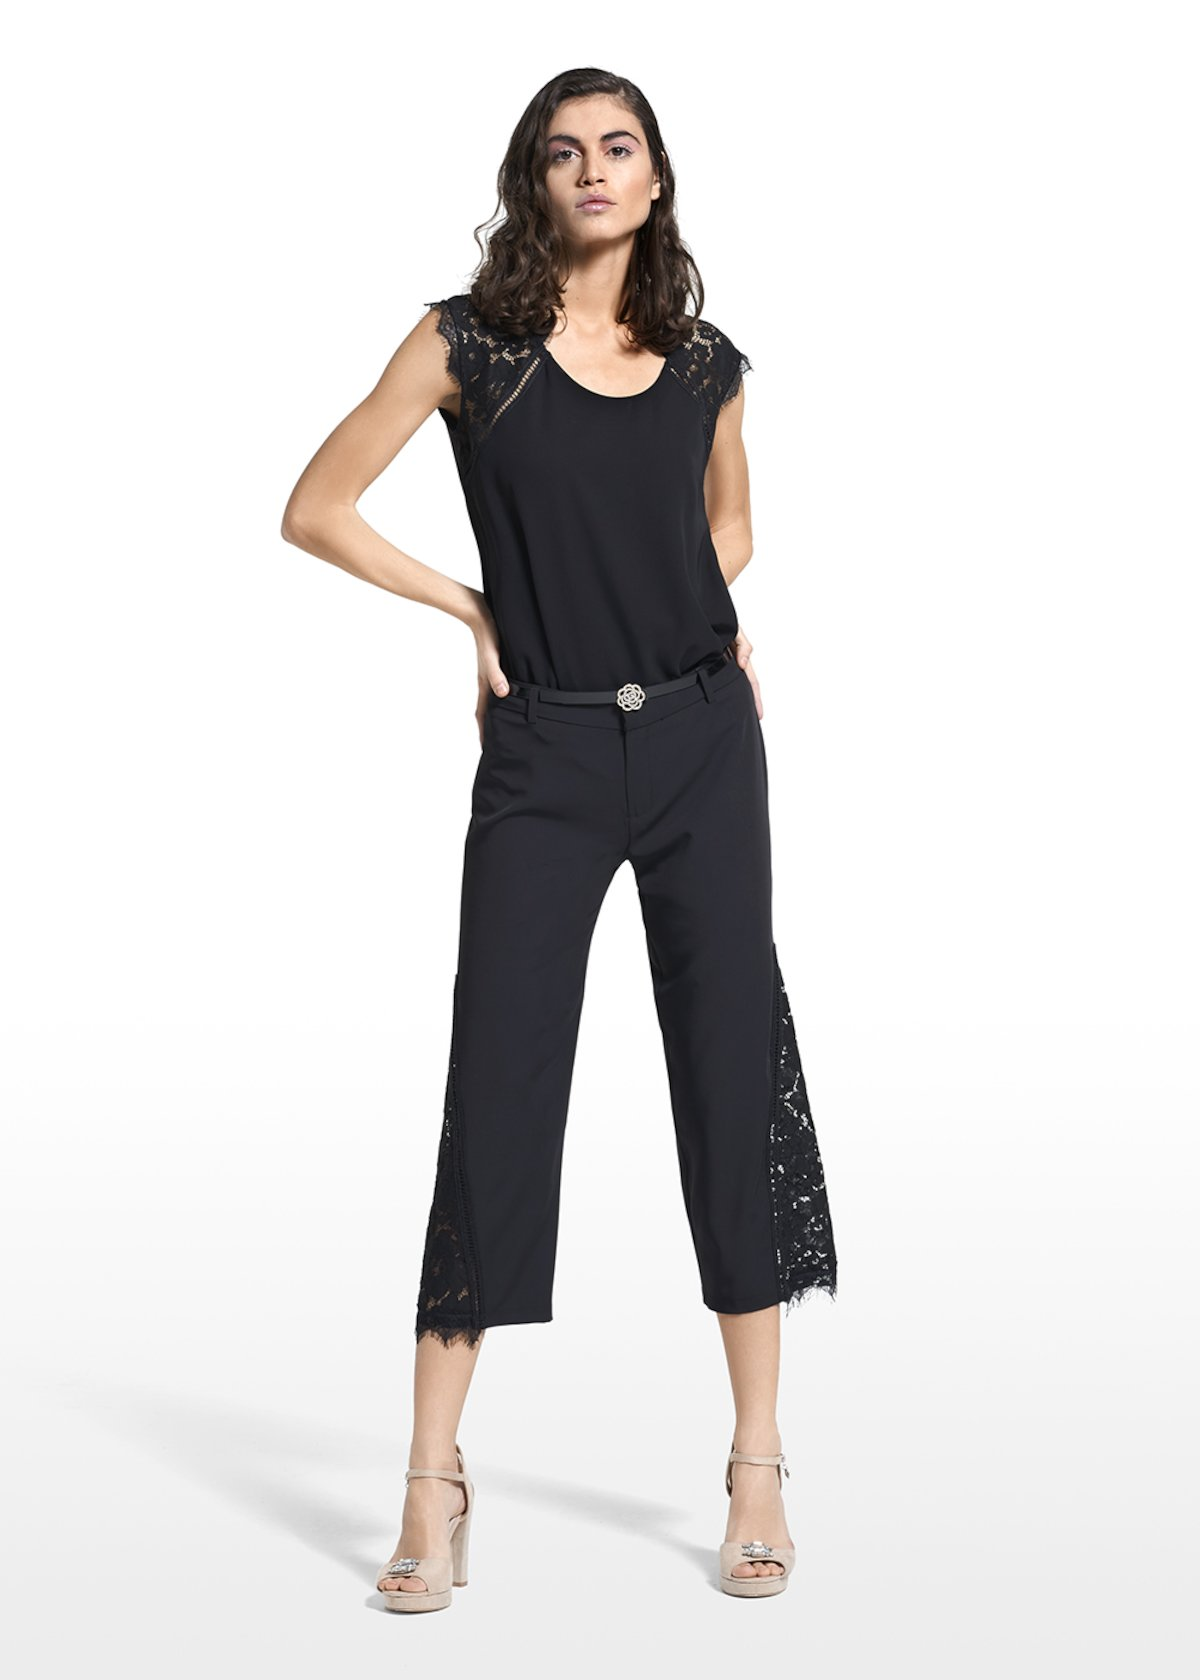 Capri pants Primo with application in lace - Black - Woman - Category image